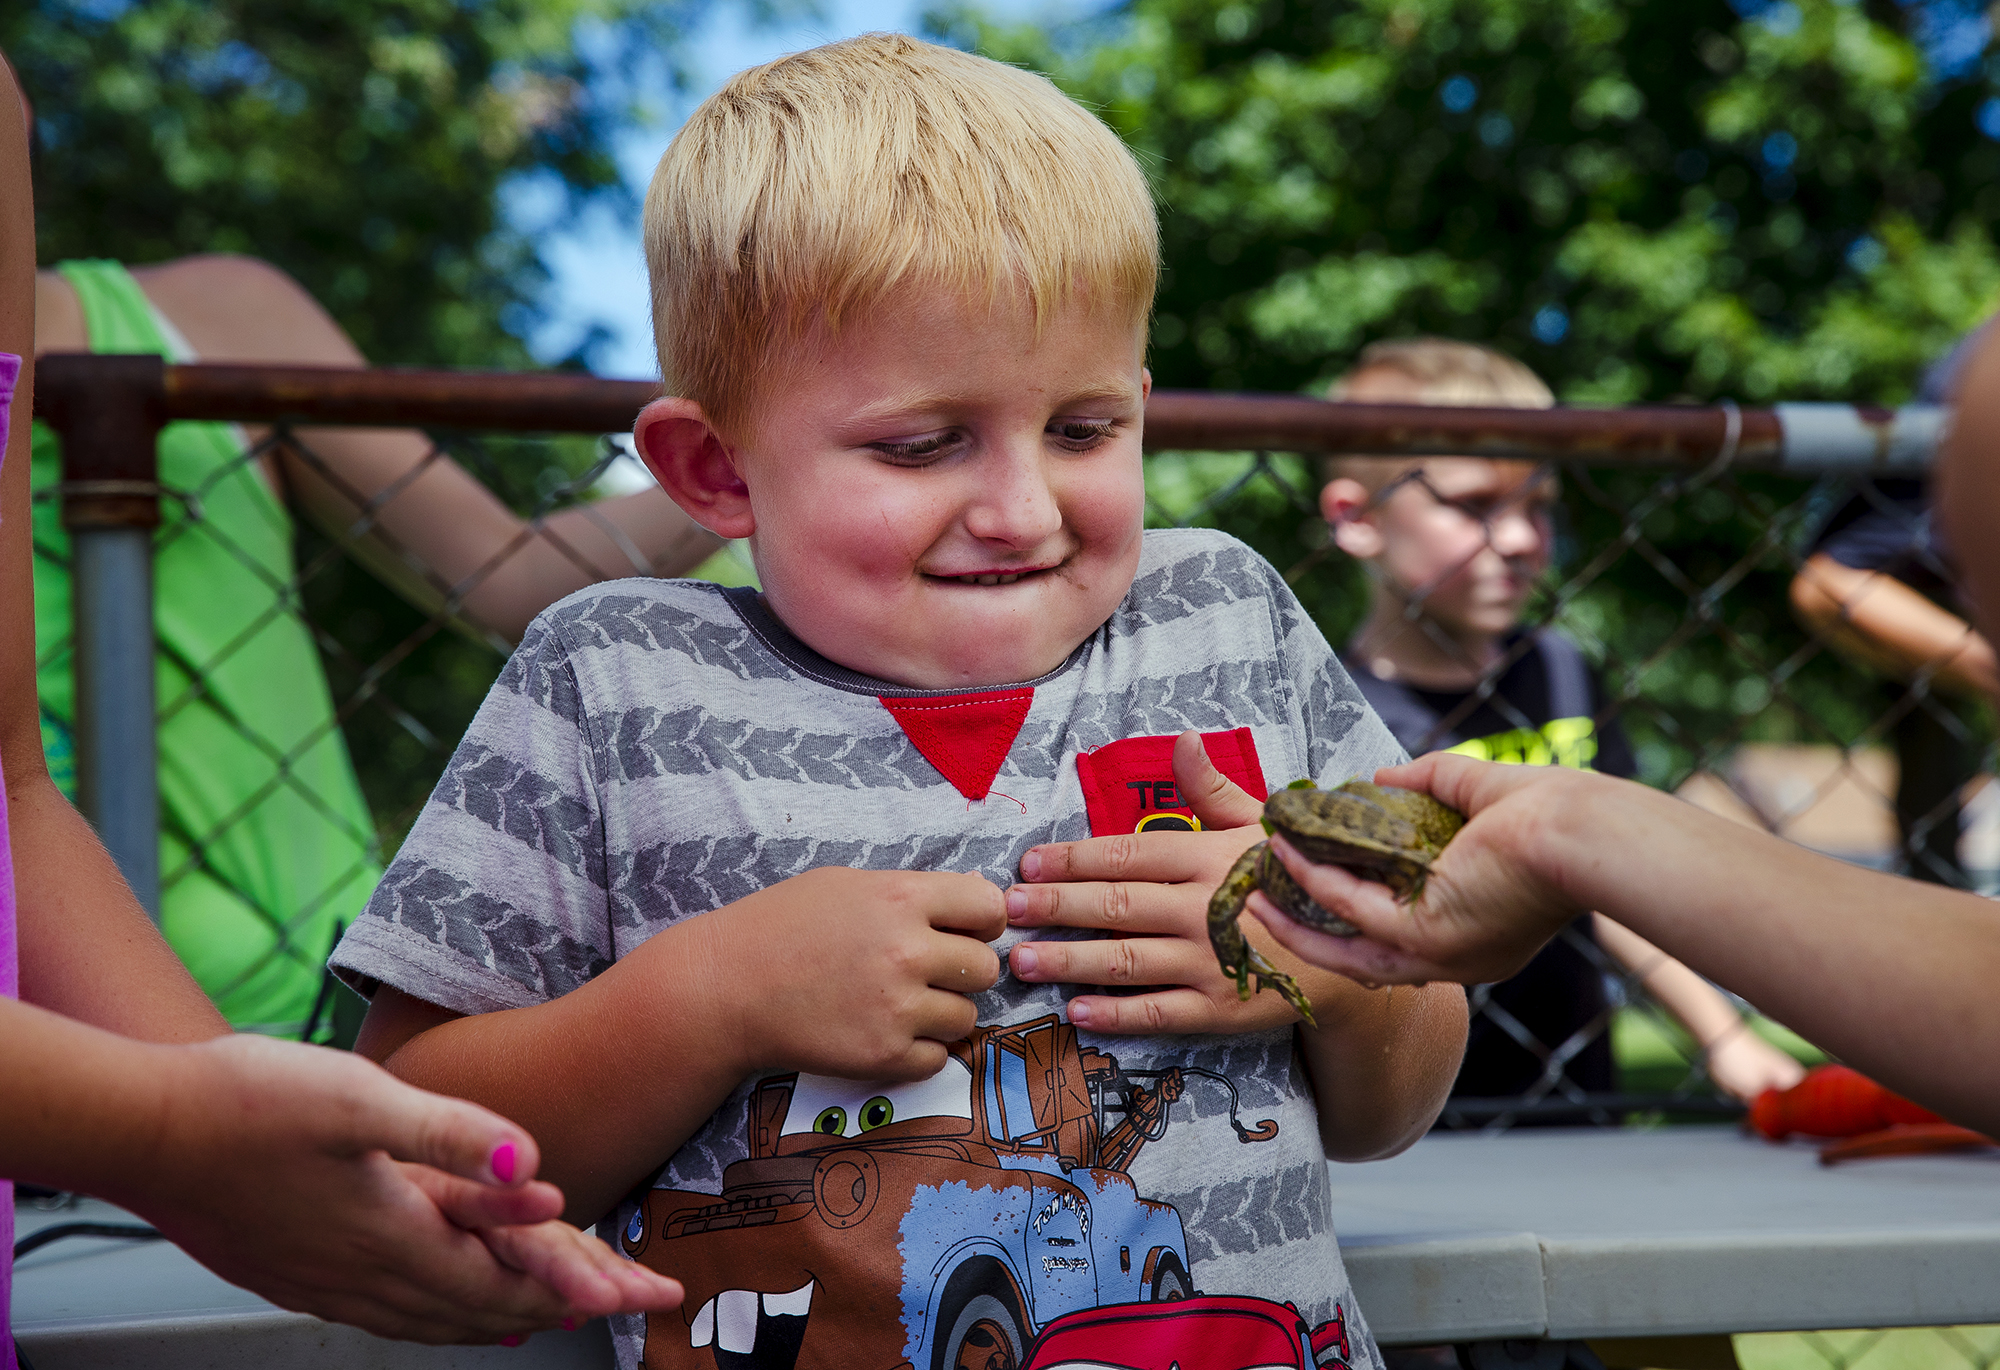 Kaden Rush eyes a bullfrog suspiciously before competing with it during the Frog Jumping Contest at the Morrisonville Homecoming and Picnic Friday, July 20, 2018. Each contestant's frog is given 45 seconds to make 3 jumps and the contestant with the longest cumulative distance receives 40 percent of the entry fees collected. [Ted Schurter/The State Journal-Register]